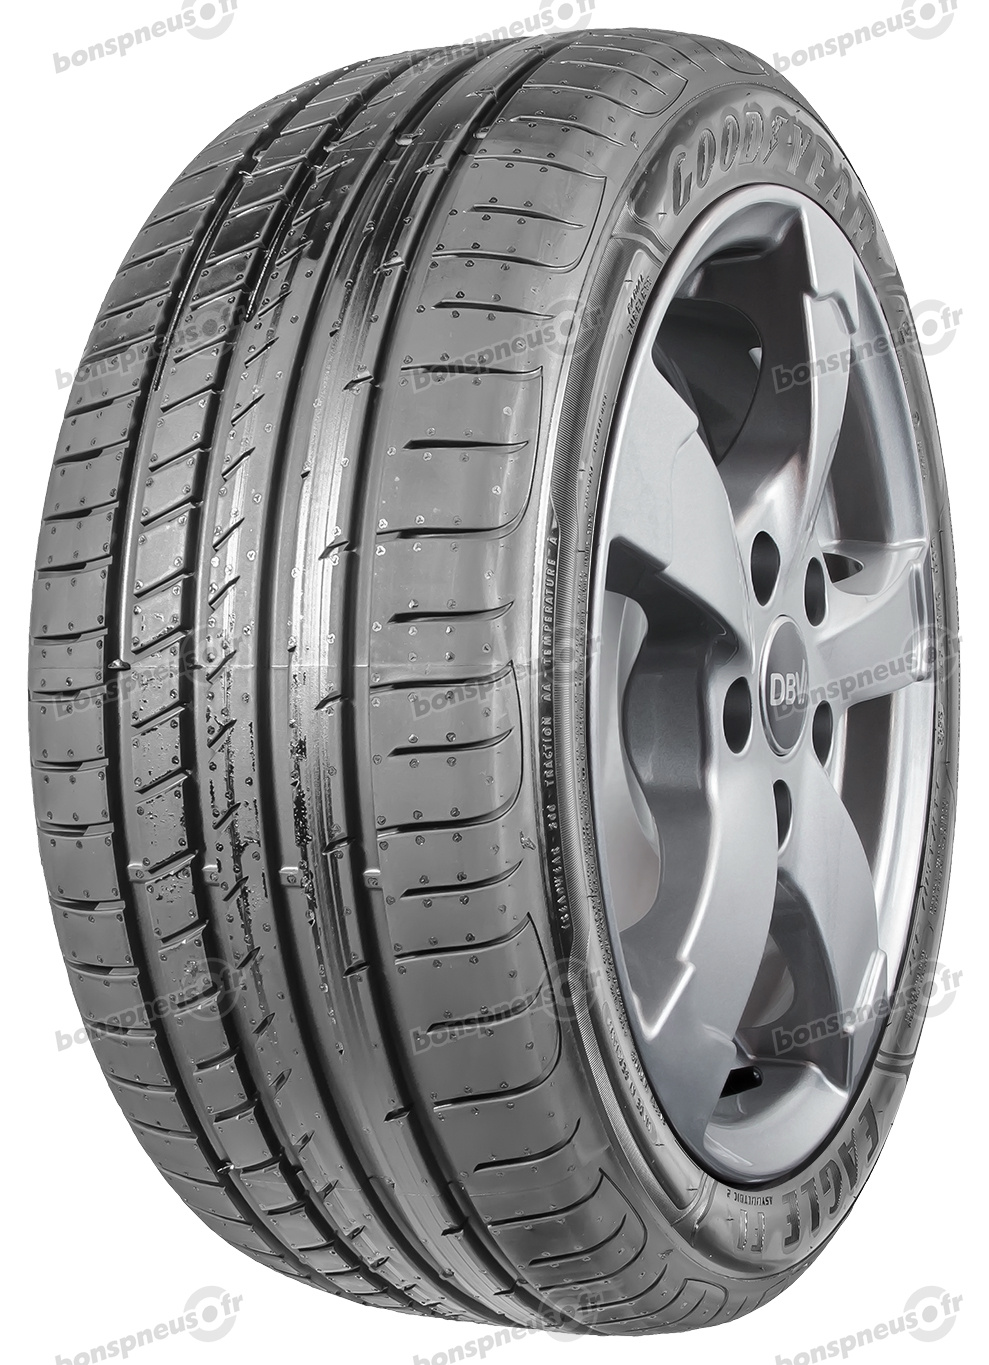 275/40 R19 101Y Eagle F1 Asymmetric 2 FP  Eagle F1 Asymmetric 2 FP